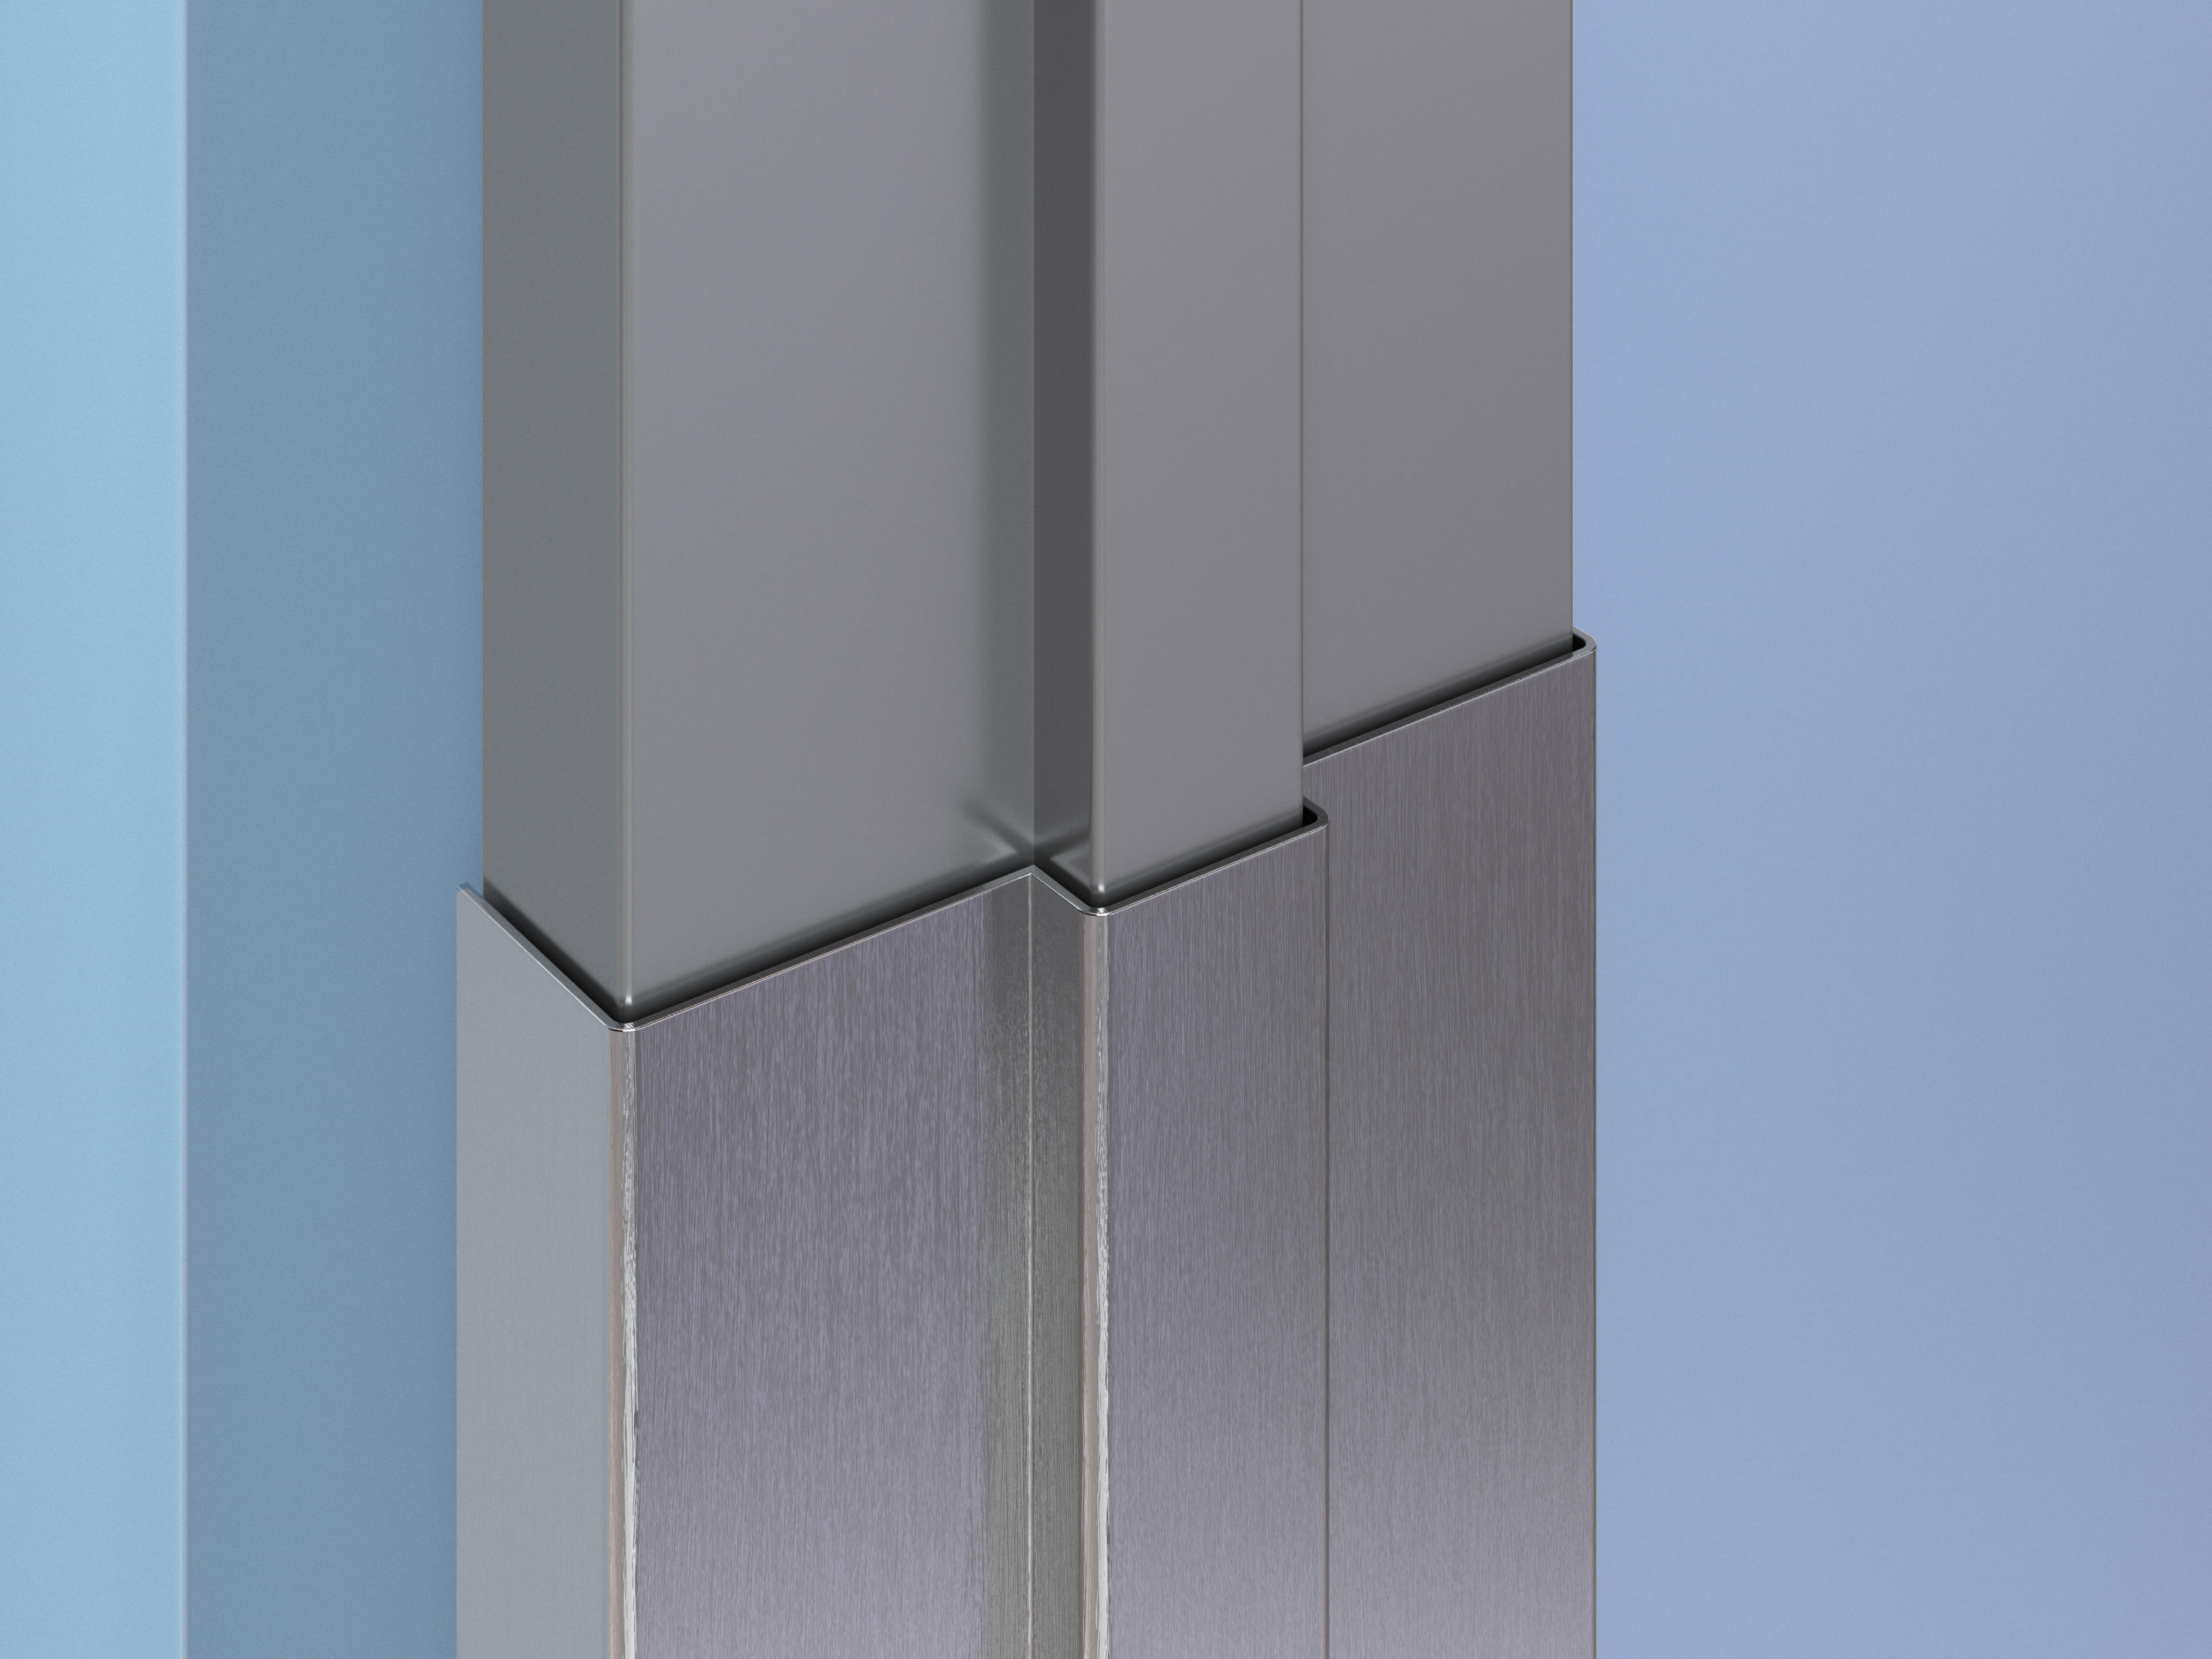 Stainless Steel Door and Frame Protection